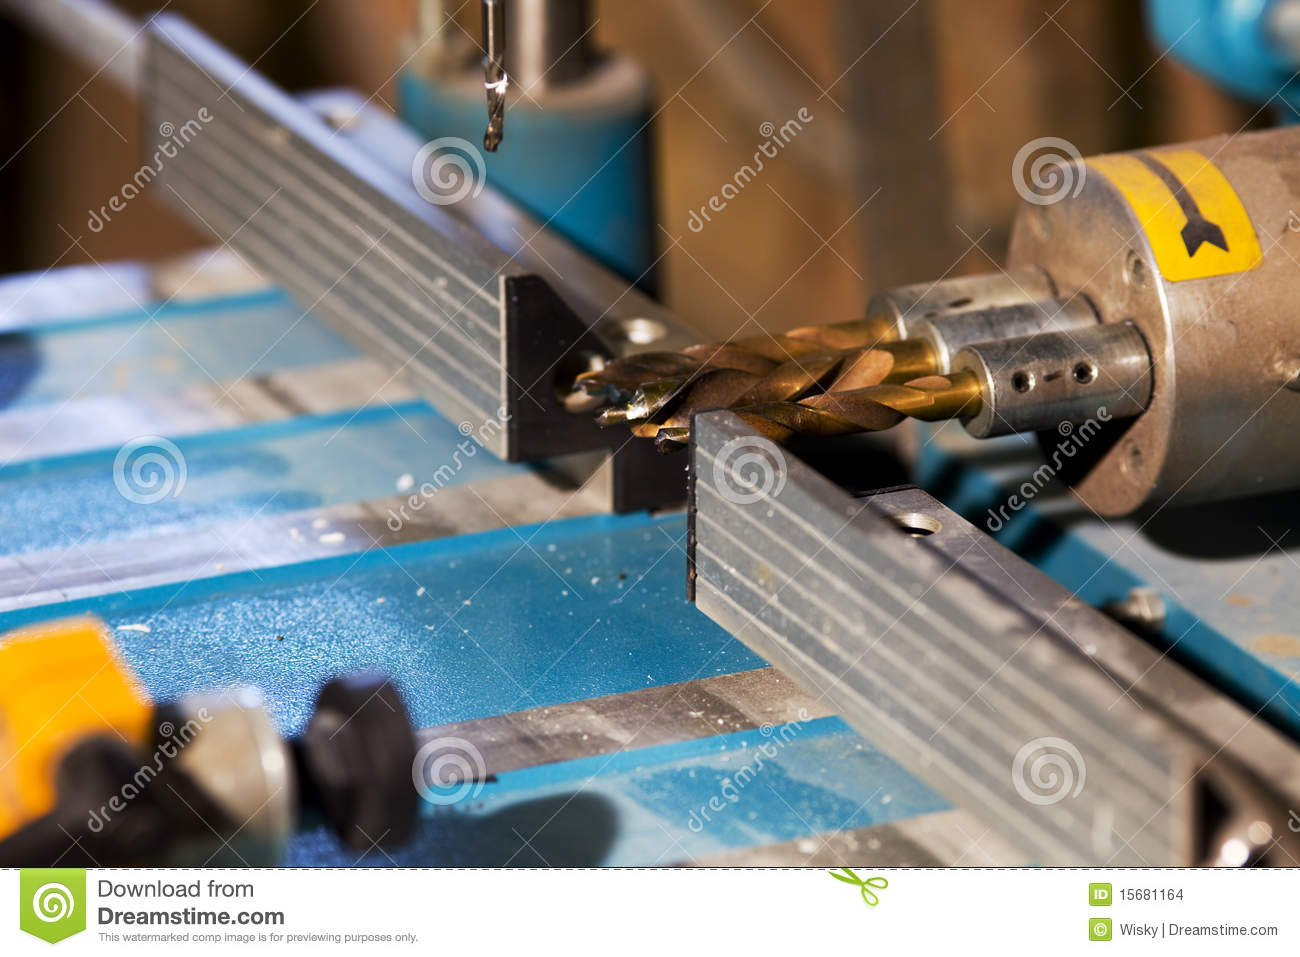 Drill for hole in plastic stock photo. Image of machine - 15681164